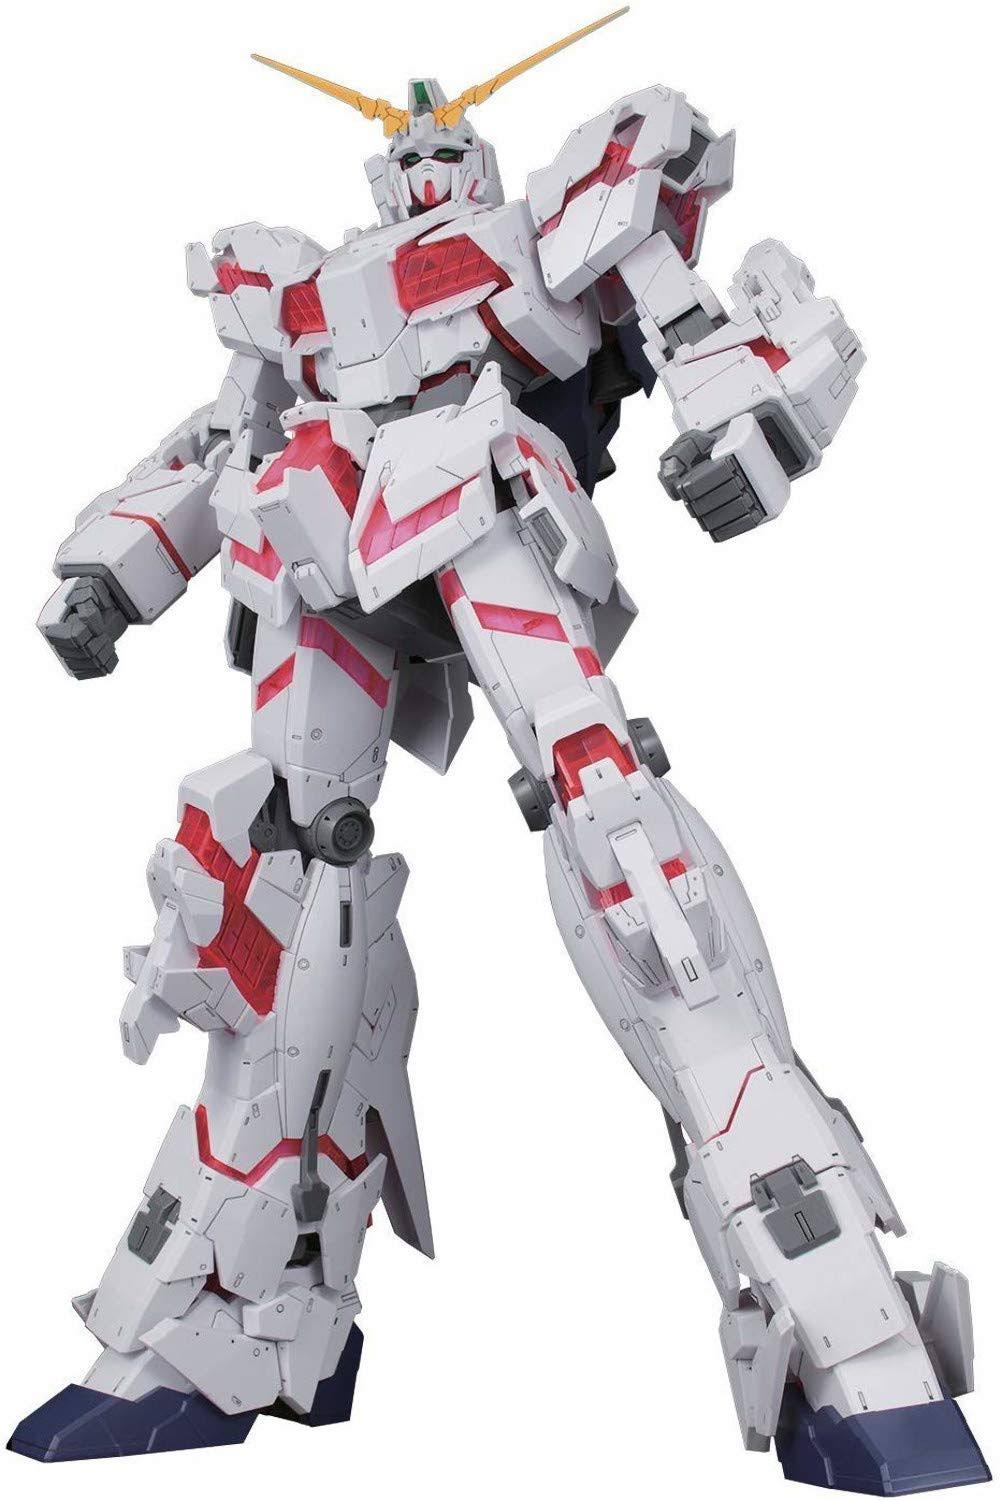 Gundam UC Unicorn Gundam Destroy Mode Mega Size 1:48 Scale Model Kit